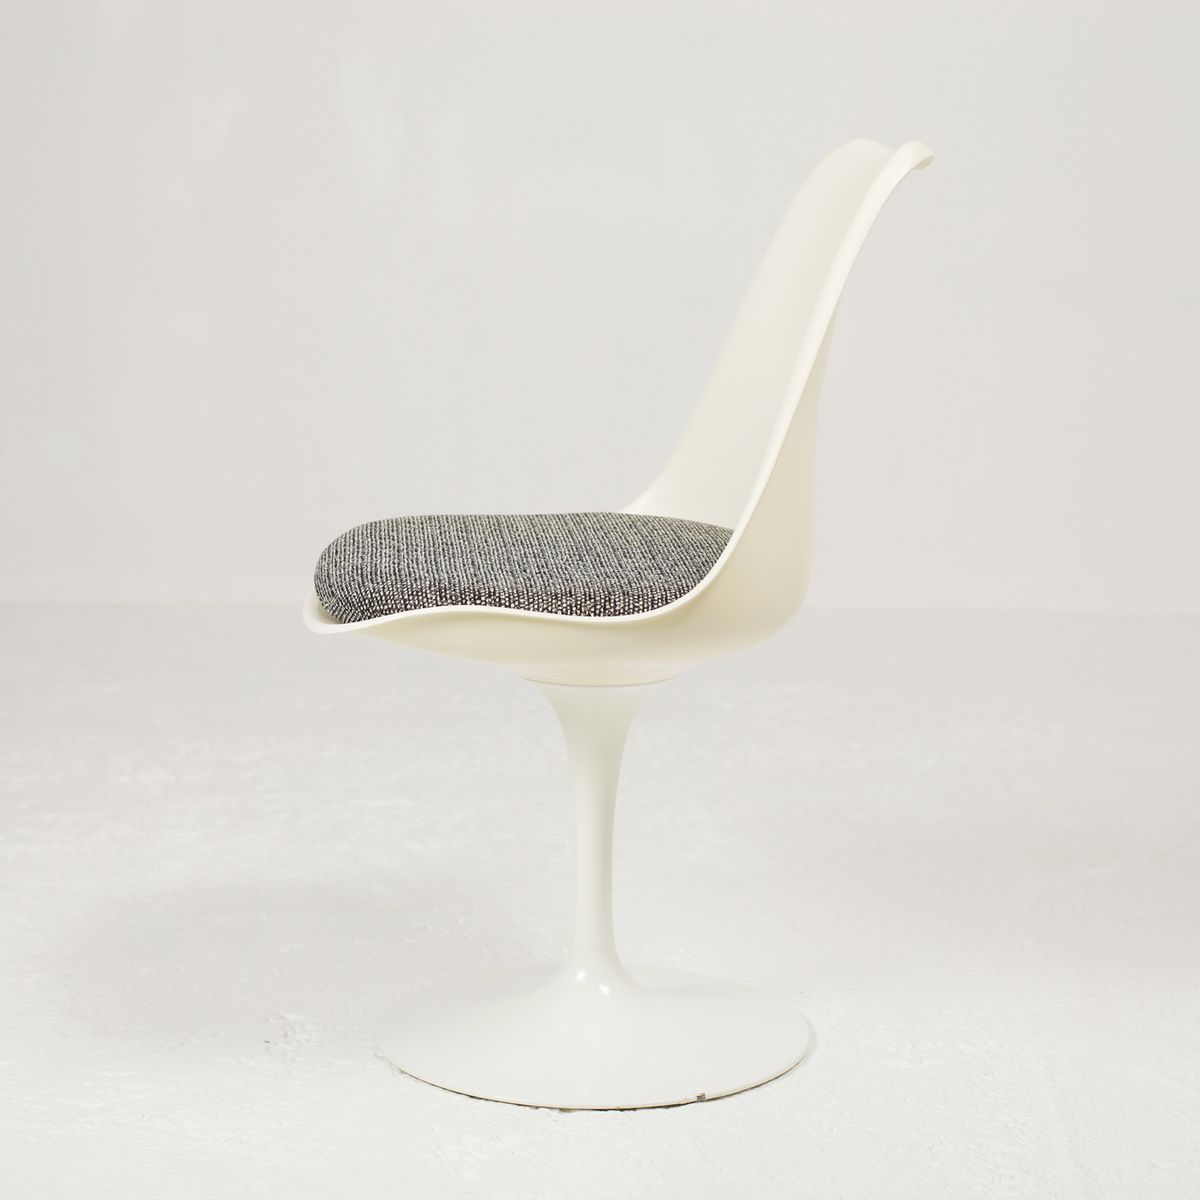 Tulip chairs by eero saarinen for knoll international for Eero saarinen tulip armchair